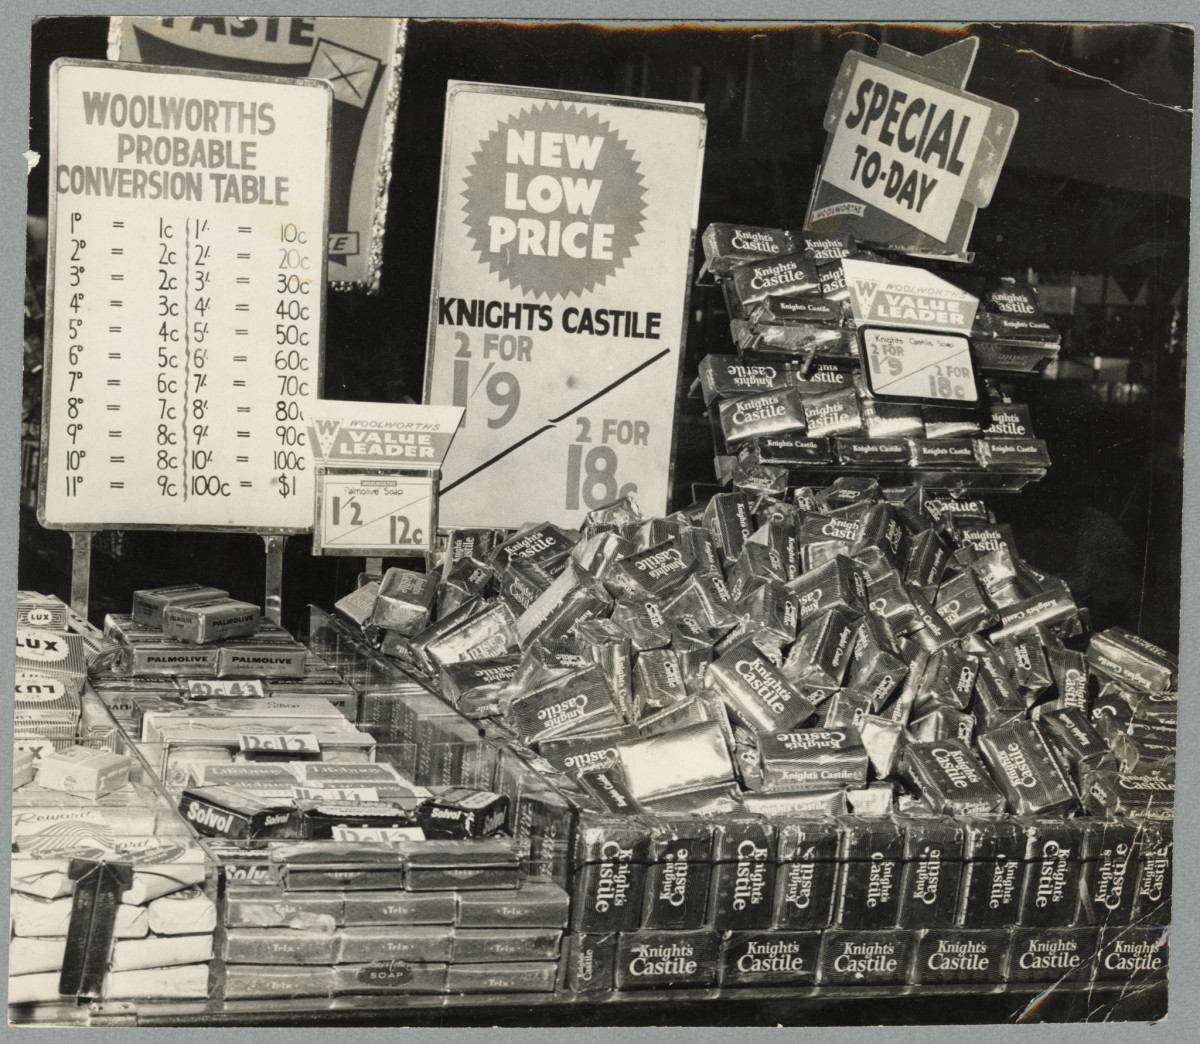 Soap Display With Decimal Conversion Chart Woolworths